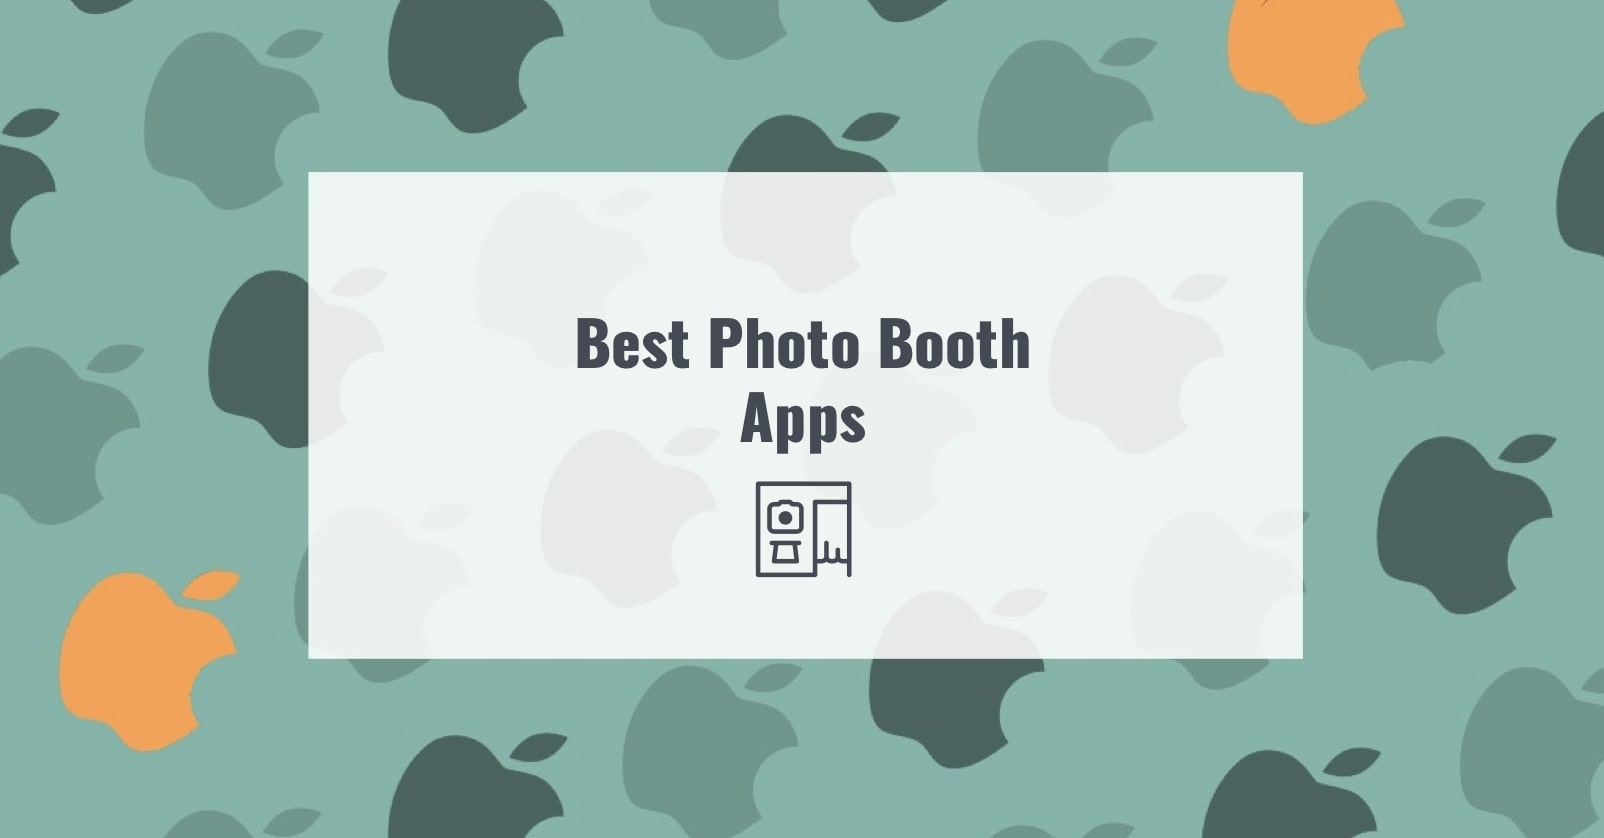 Best Photo Booth Apps